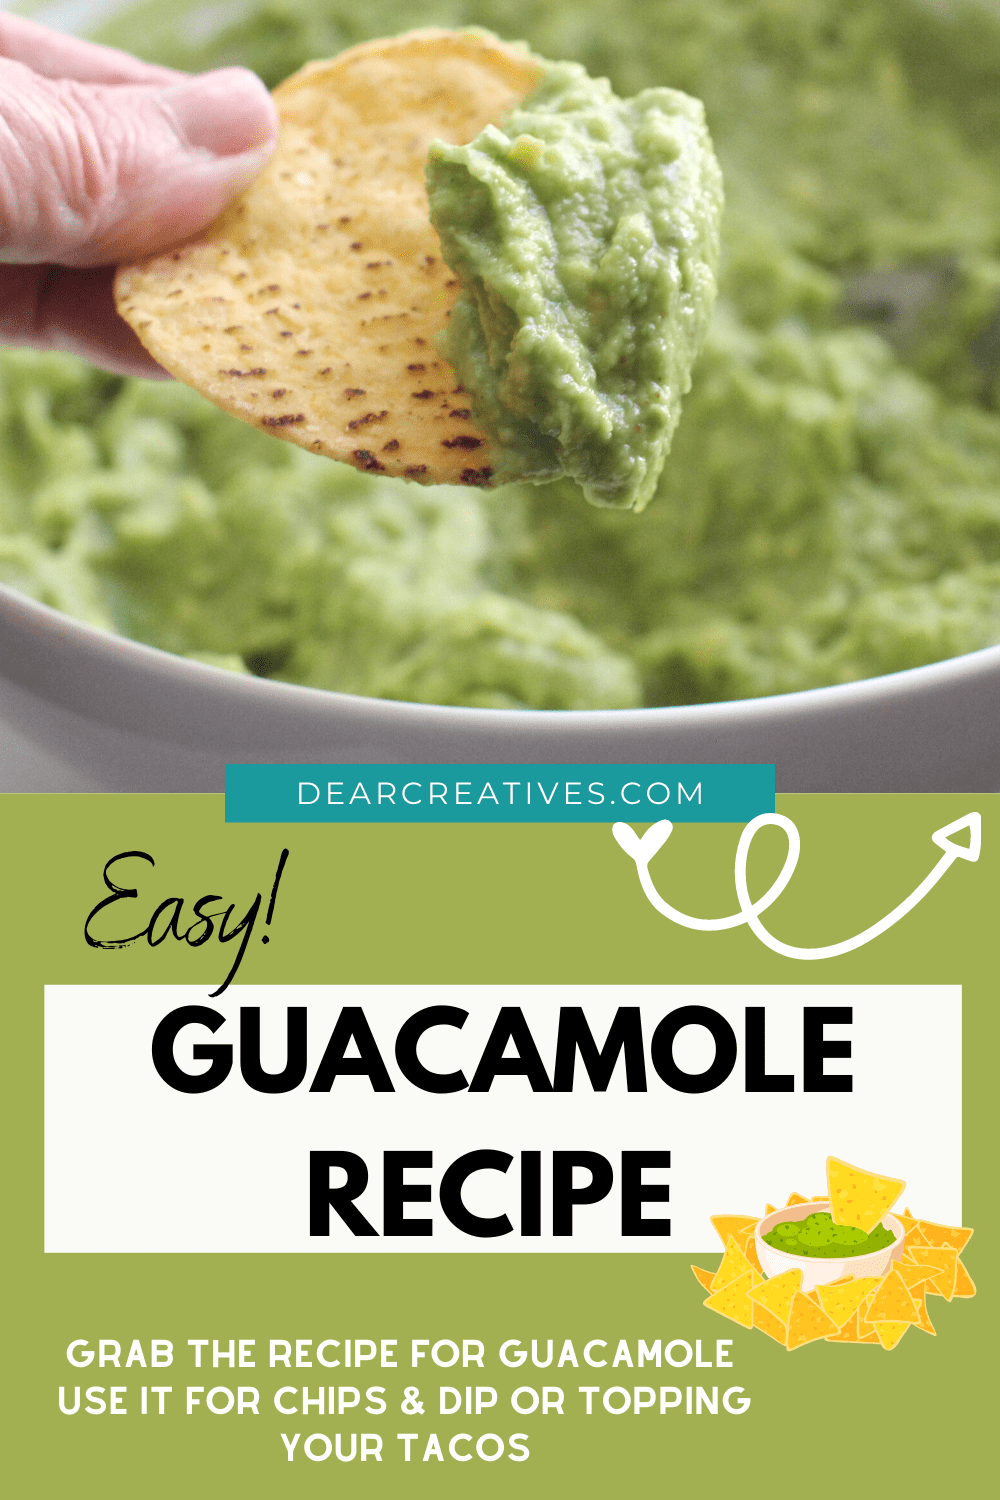 Easy Guacamole Recipe Is Simply The Best!